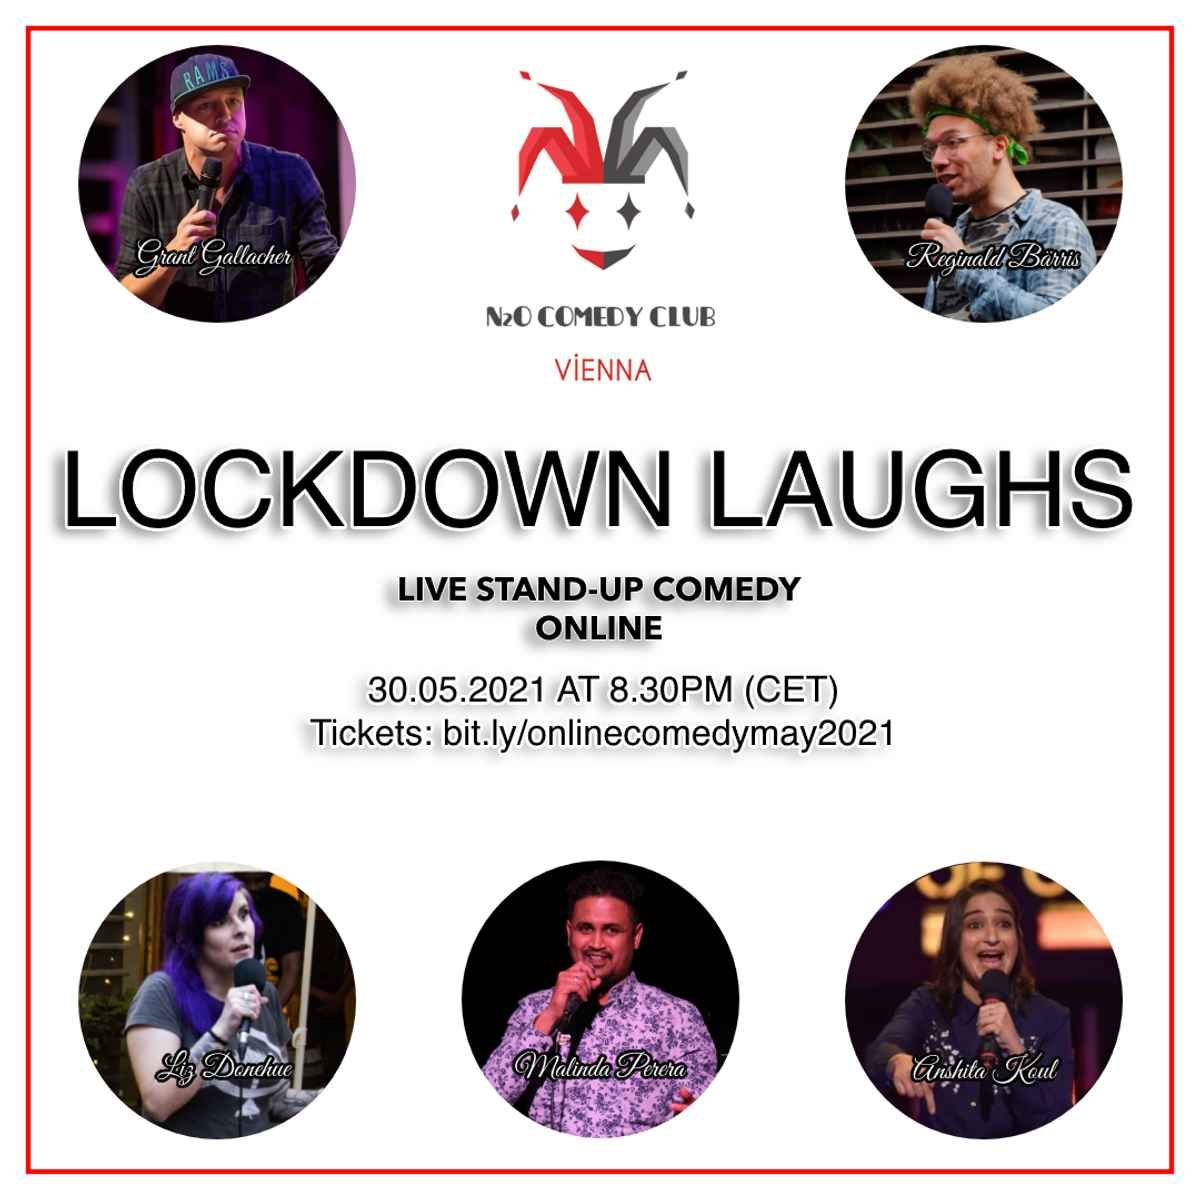 Lockdown Laughs - Live English Stand Up Comedy (Online) event impressions #2